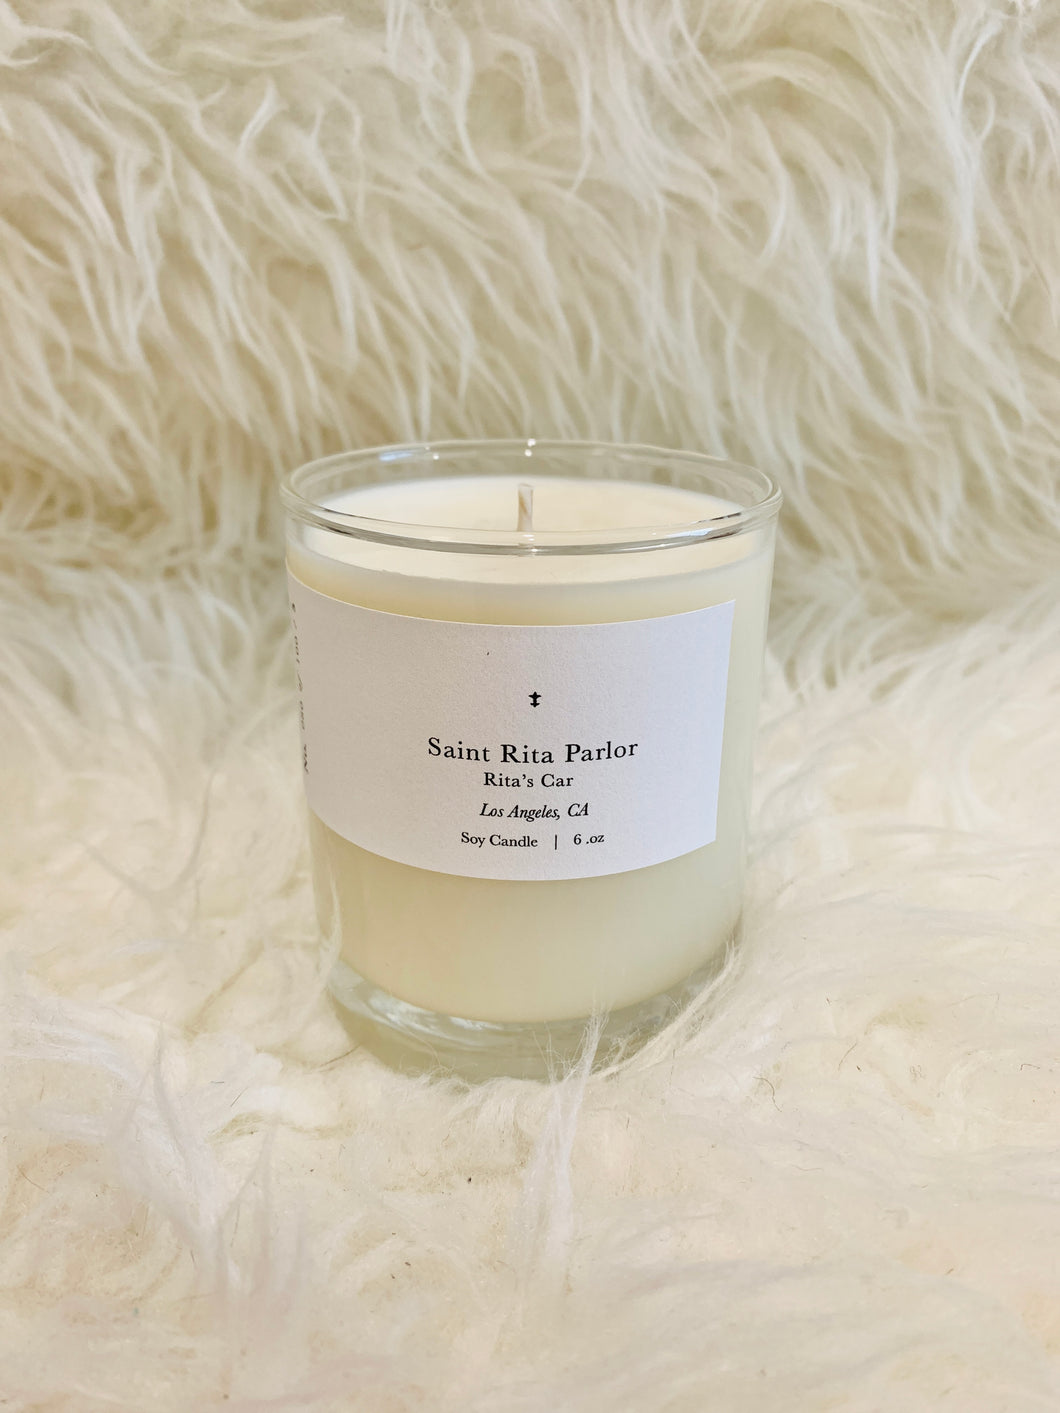 Saint Rita Parlor Candle: Rita's Car